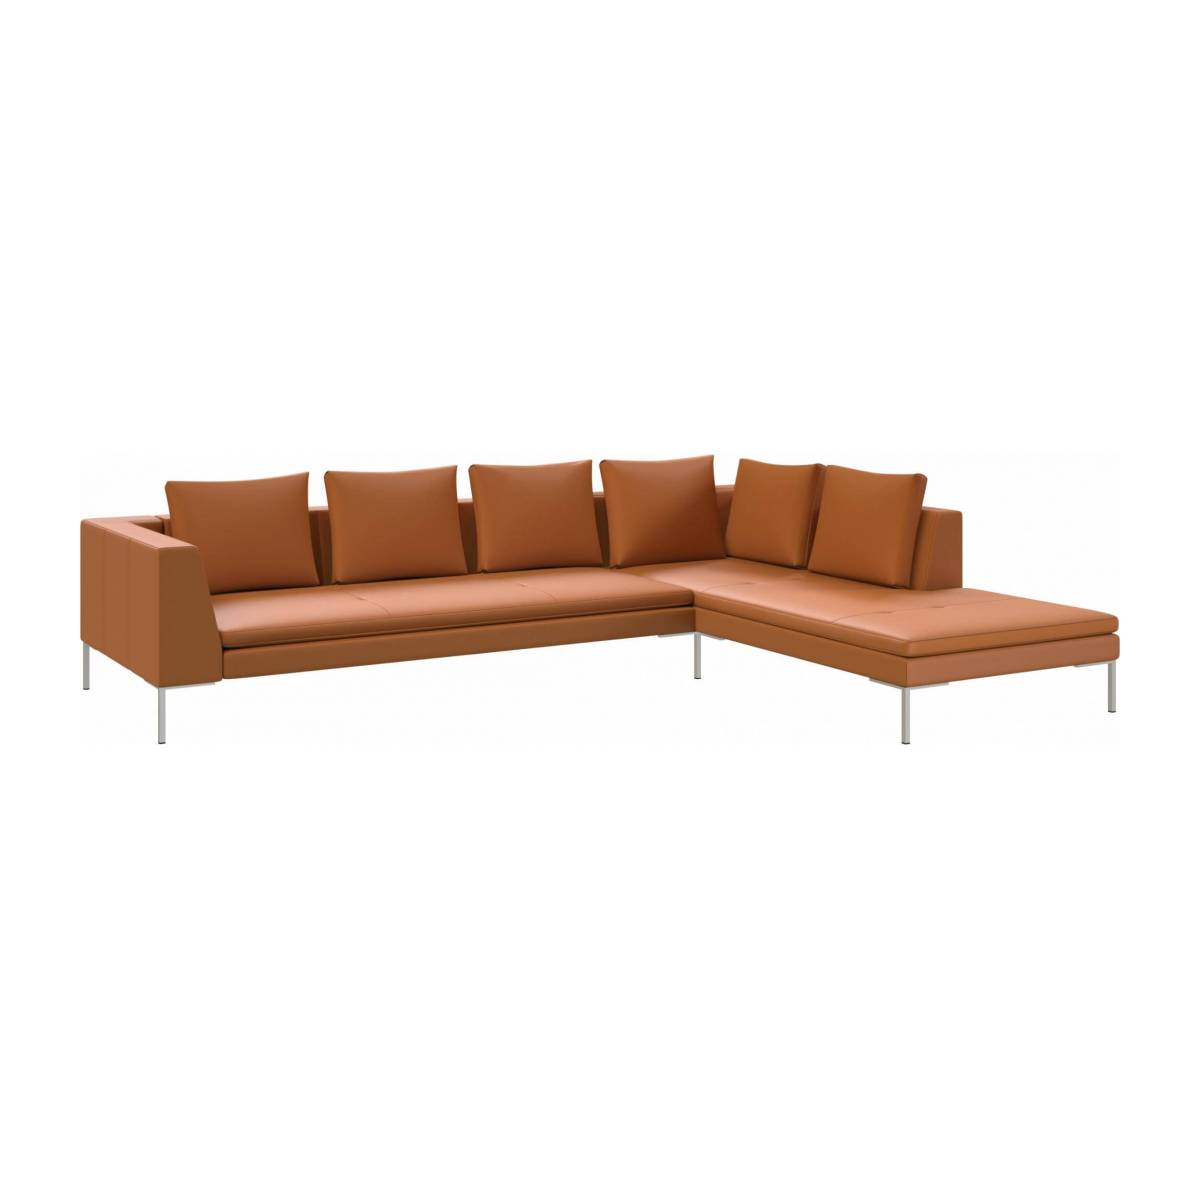 3 seater sofa with chaise longue on the right in Savoy semi-aniline leather, cognac  n°2